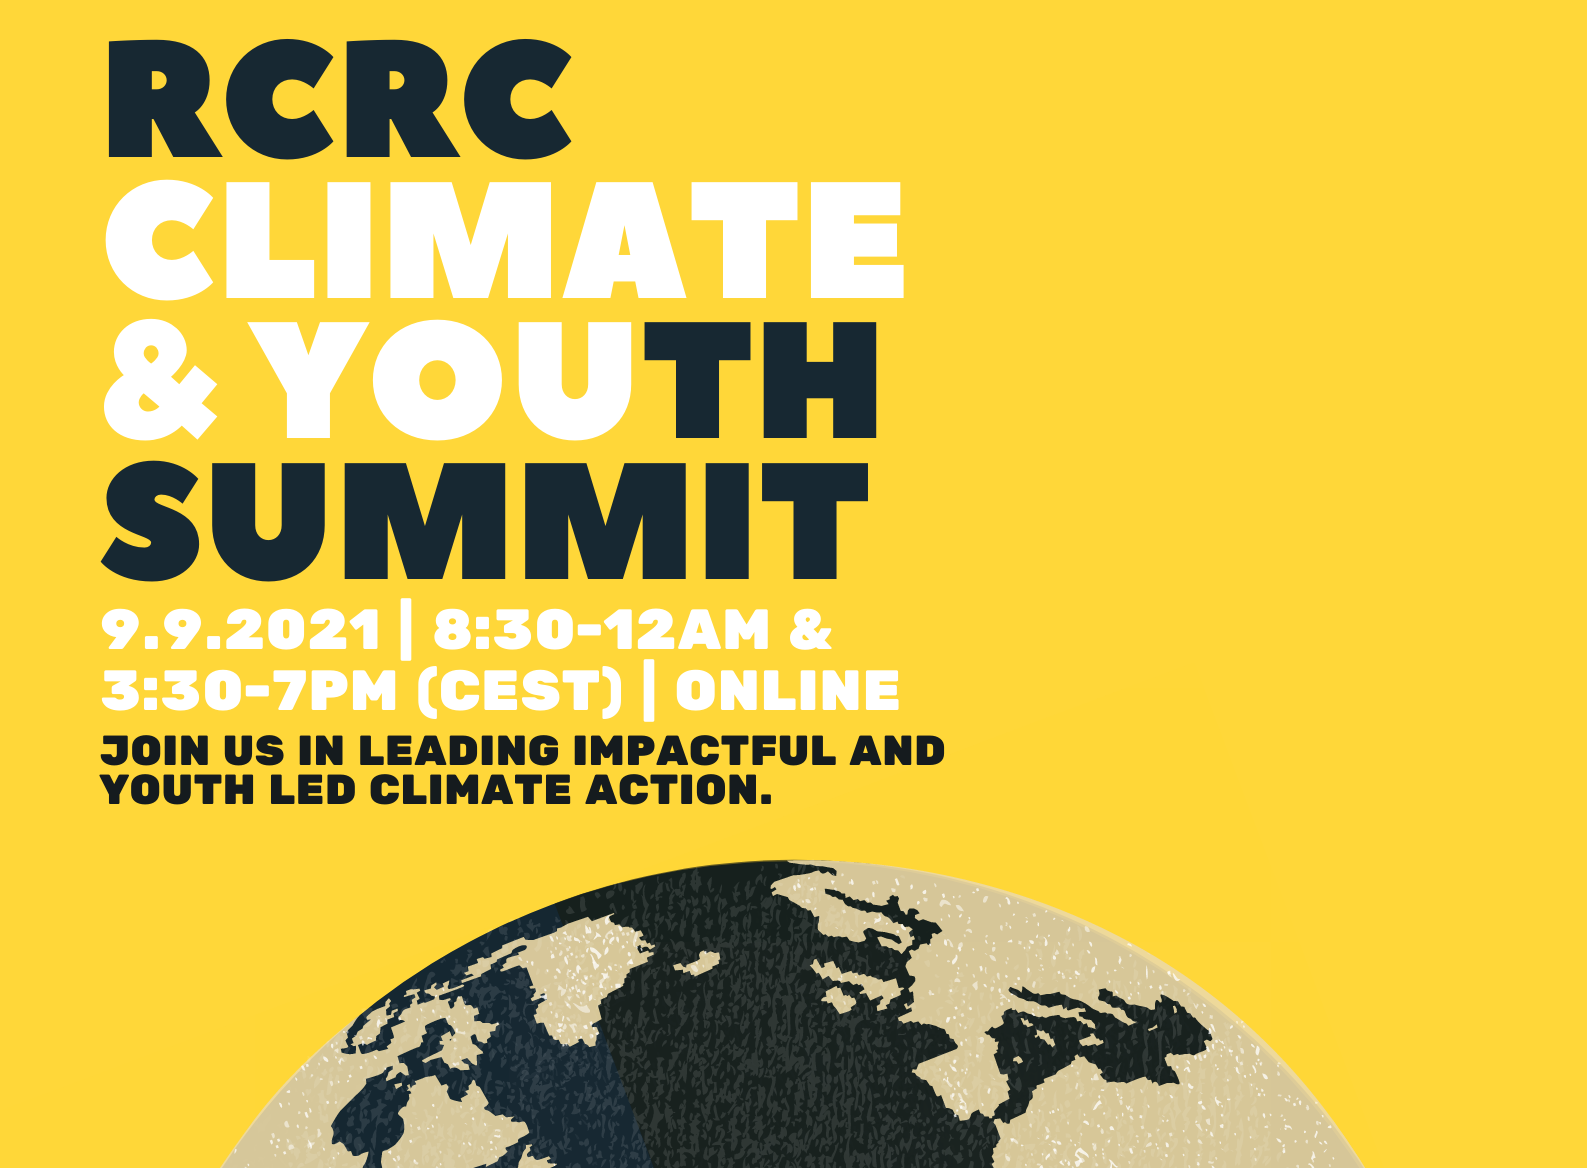 Join Global RCRC Climate Youth Community!